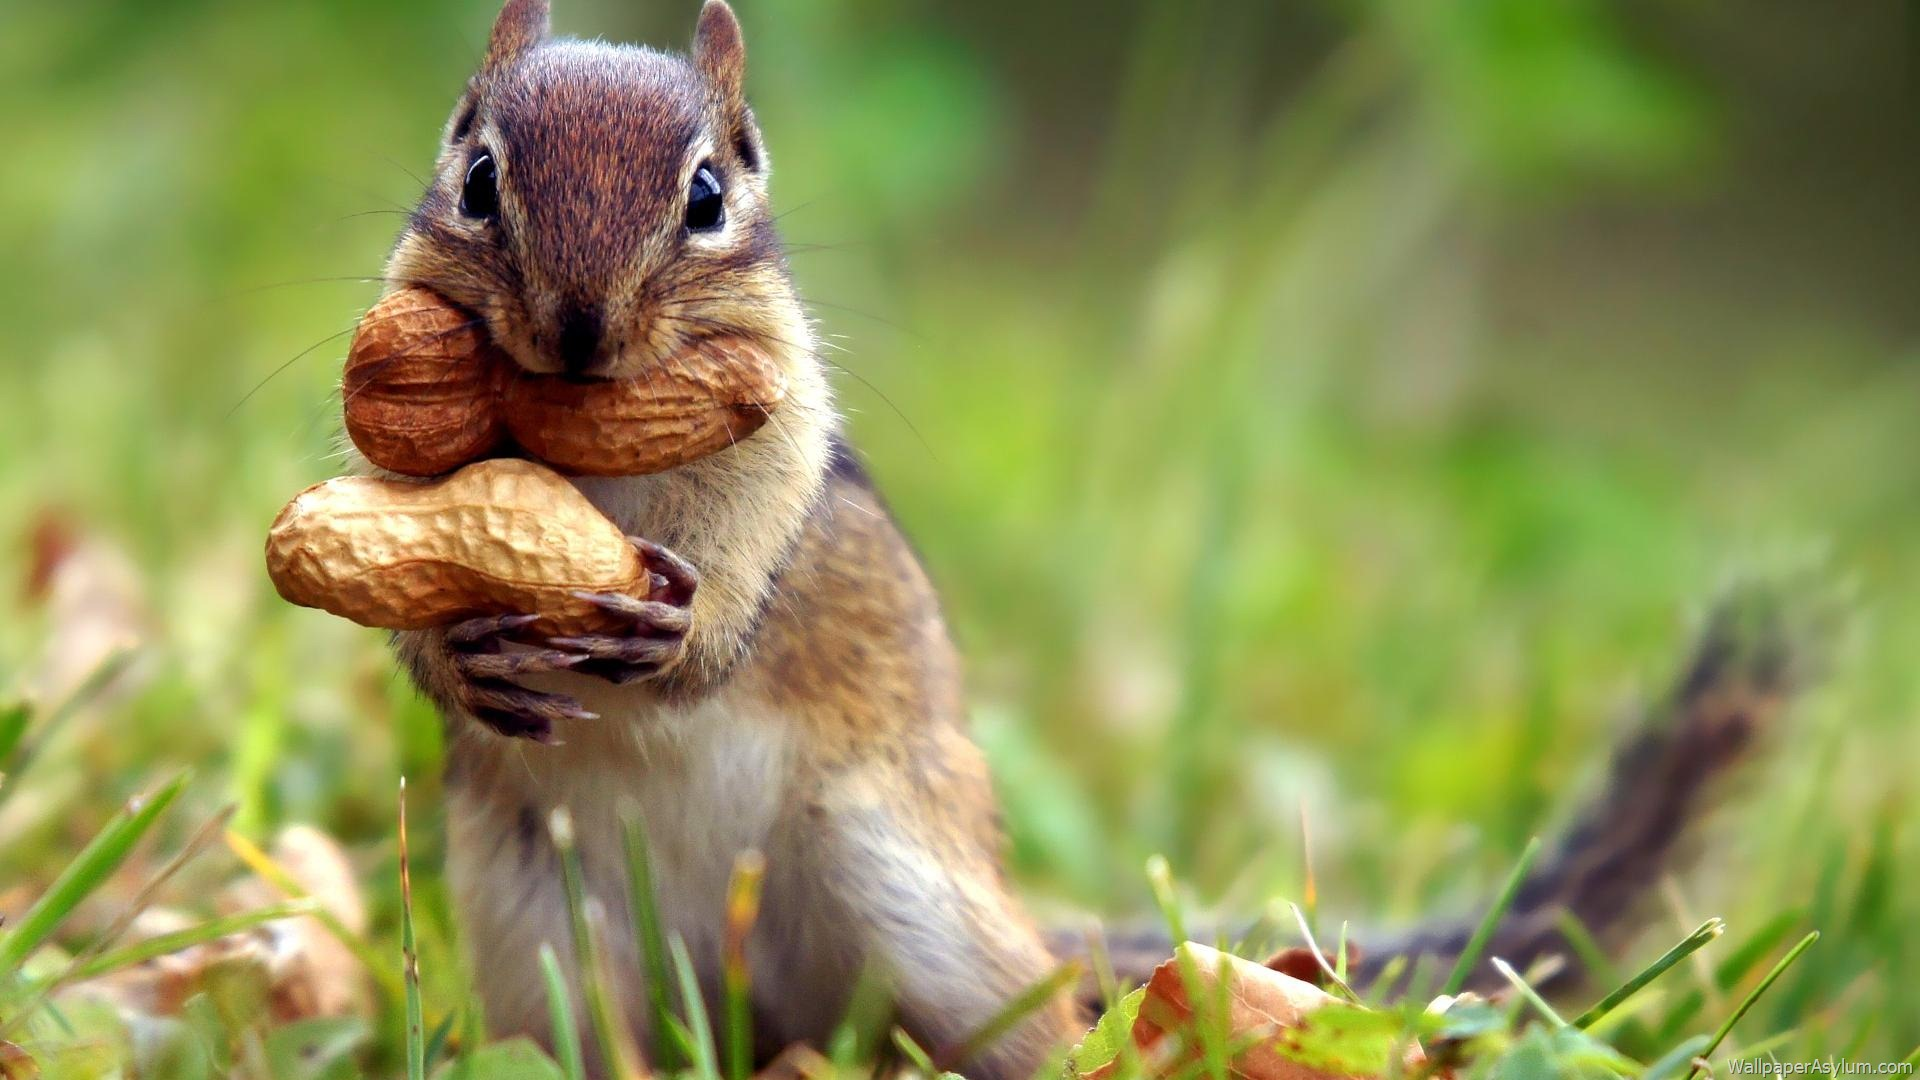 Adorable Squirrel Widescreen Wallpapers